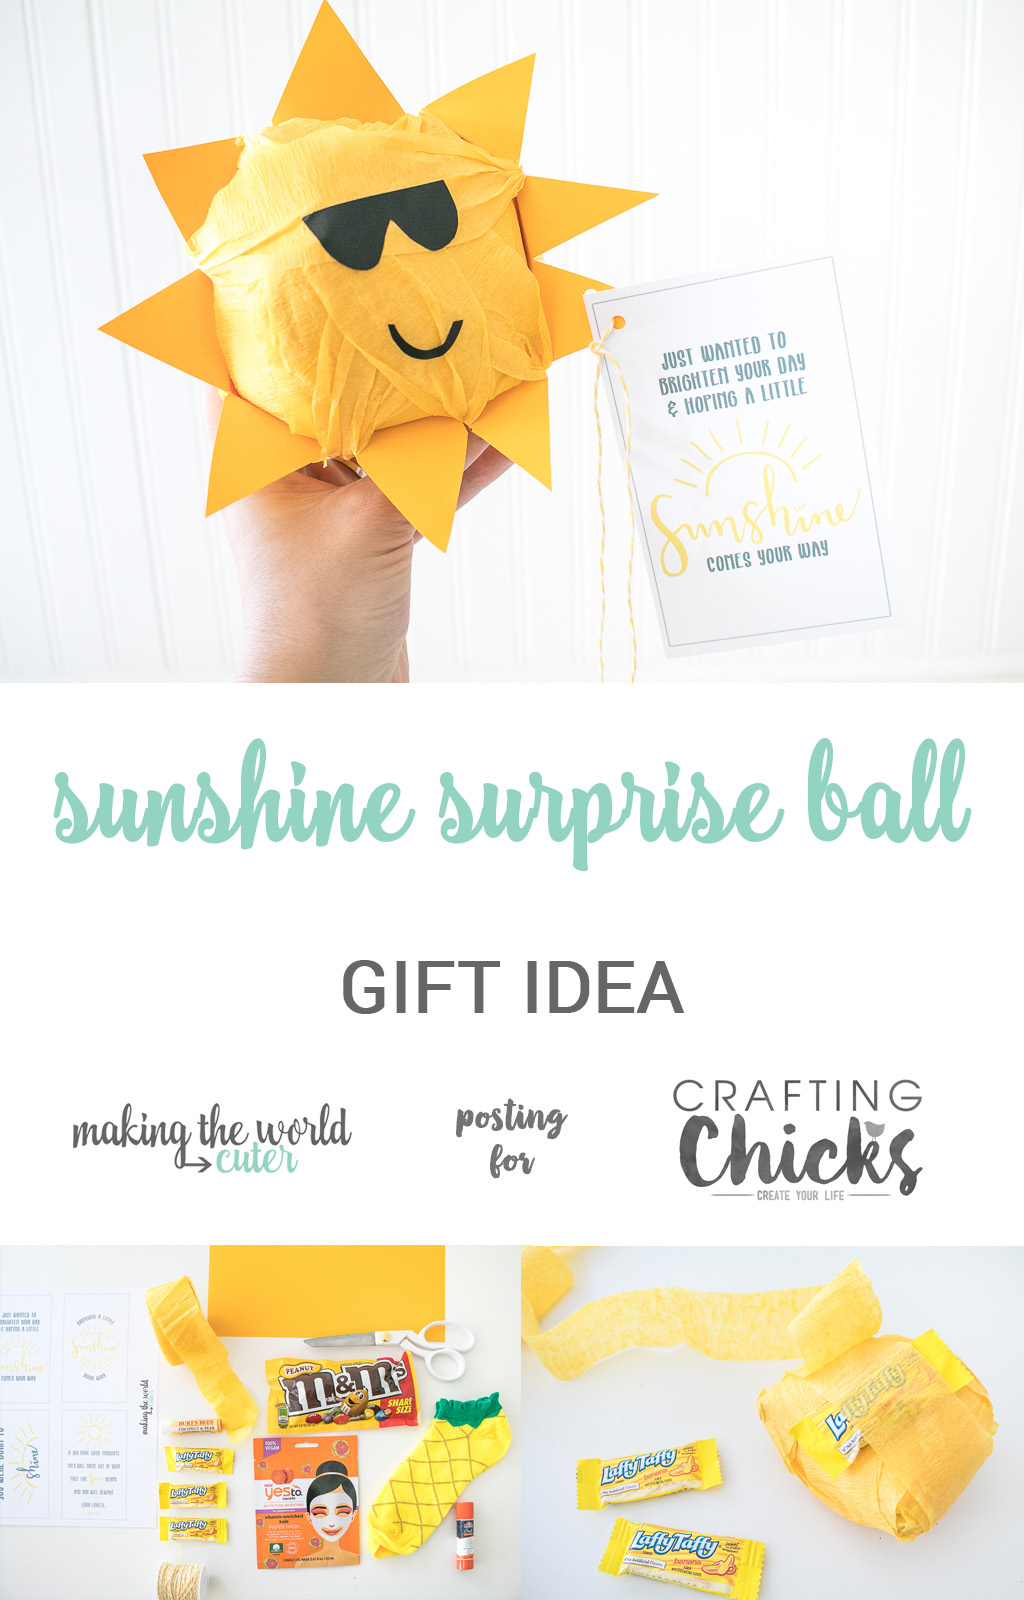 Sunshine Surprise Ball | Looking to make someone's day a little more bright? Make one of these cute sunshine surprise ball gifts for birthdays, get well gifts or just a little random act of kindness! #kindness #kids #activity #craft